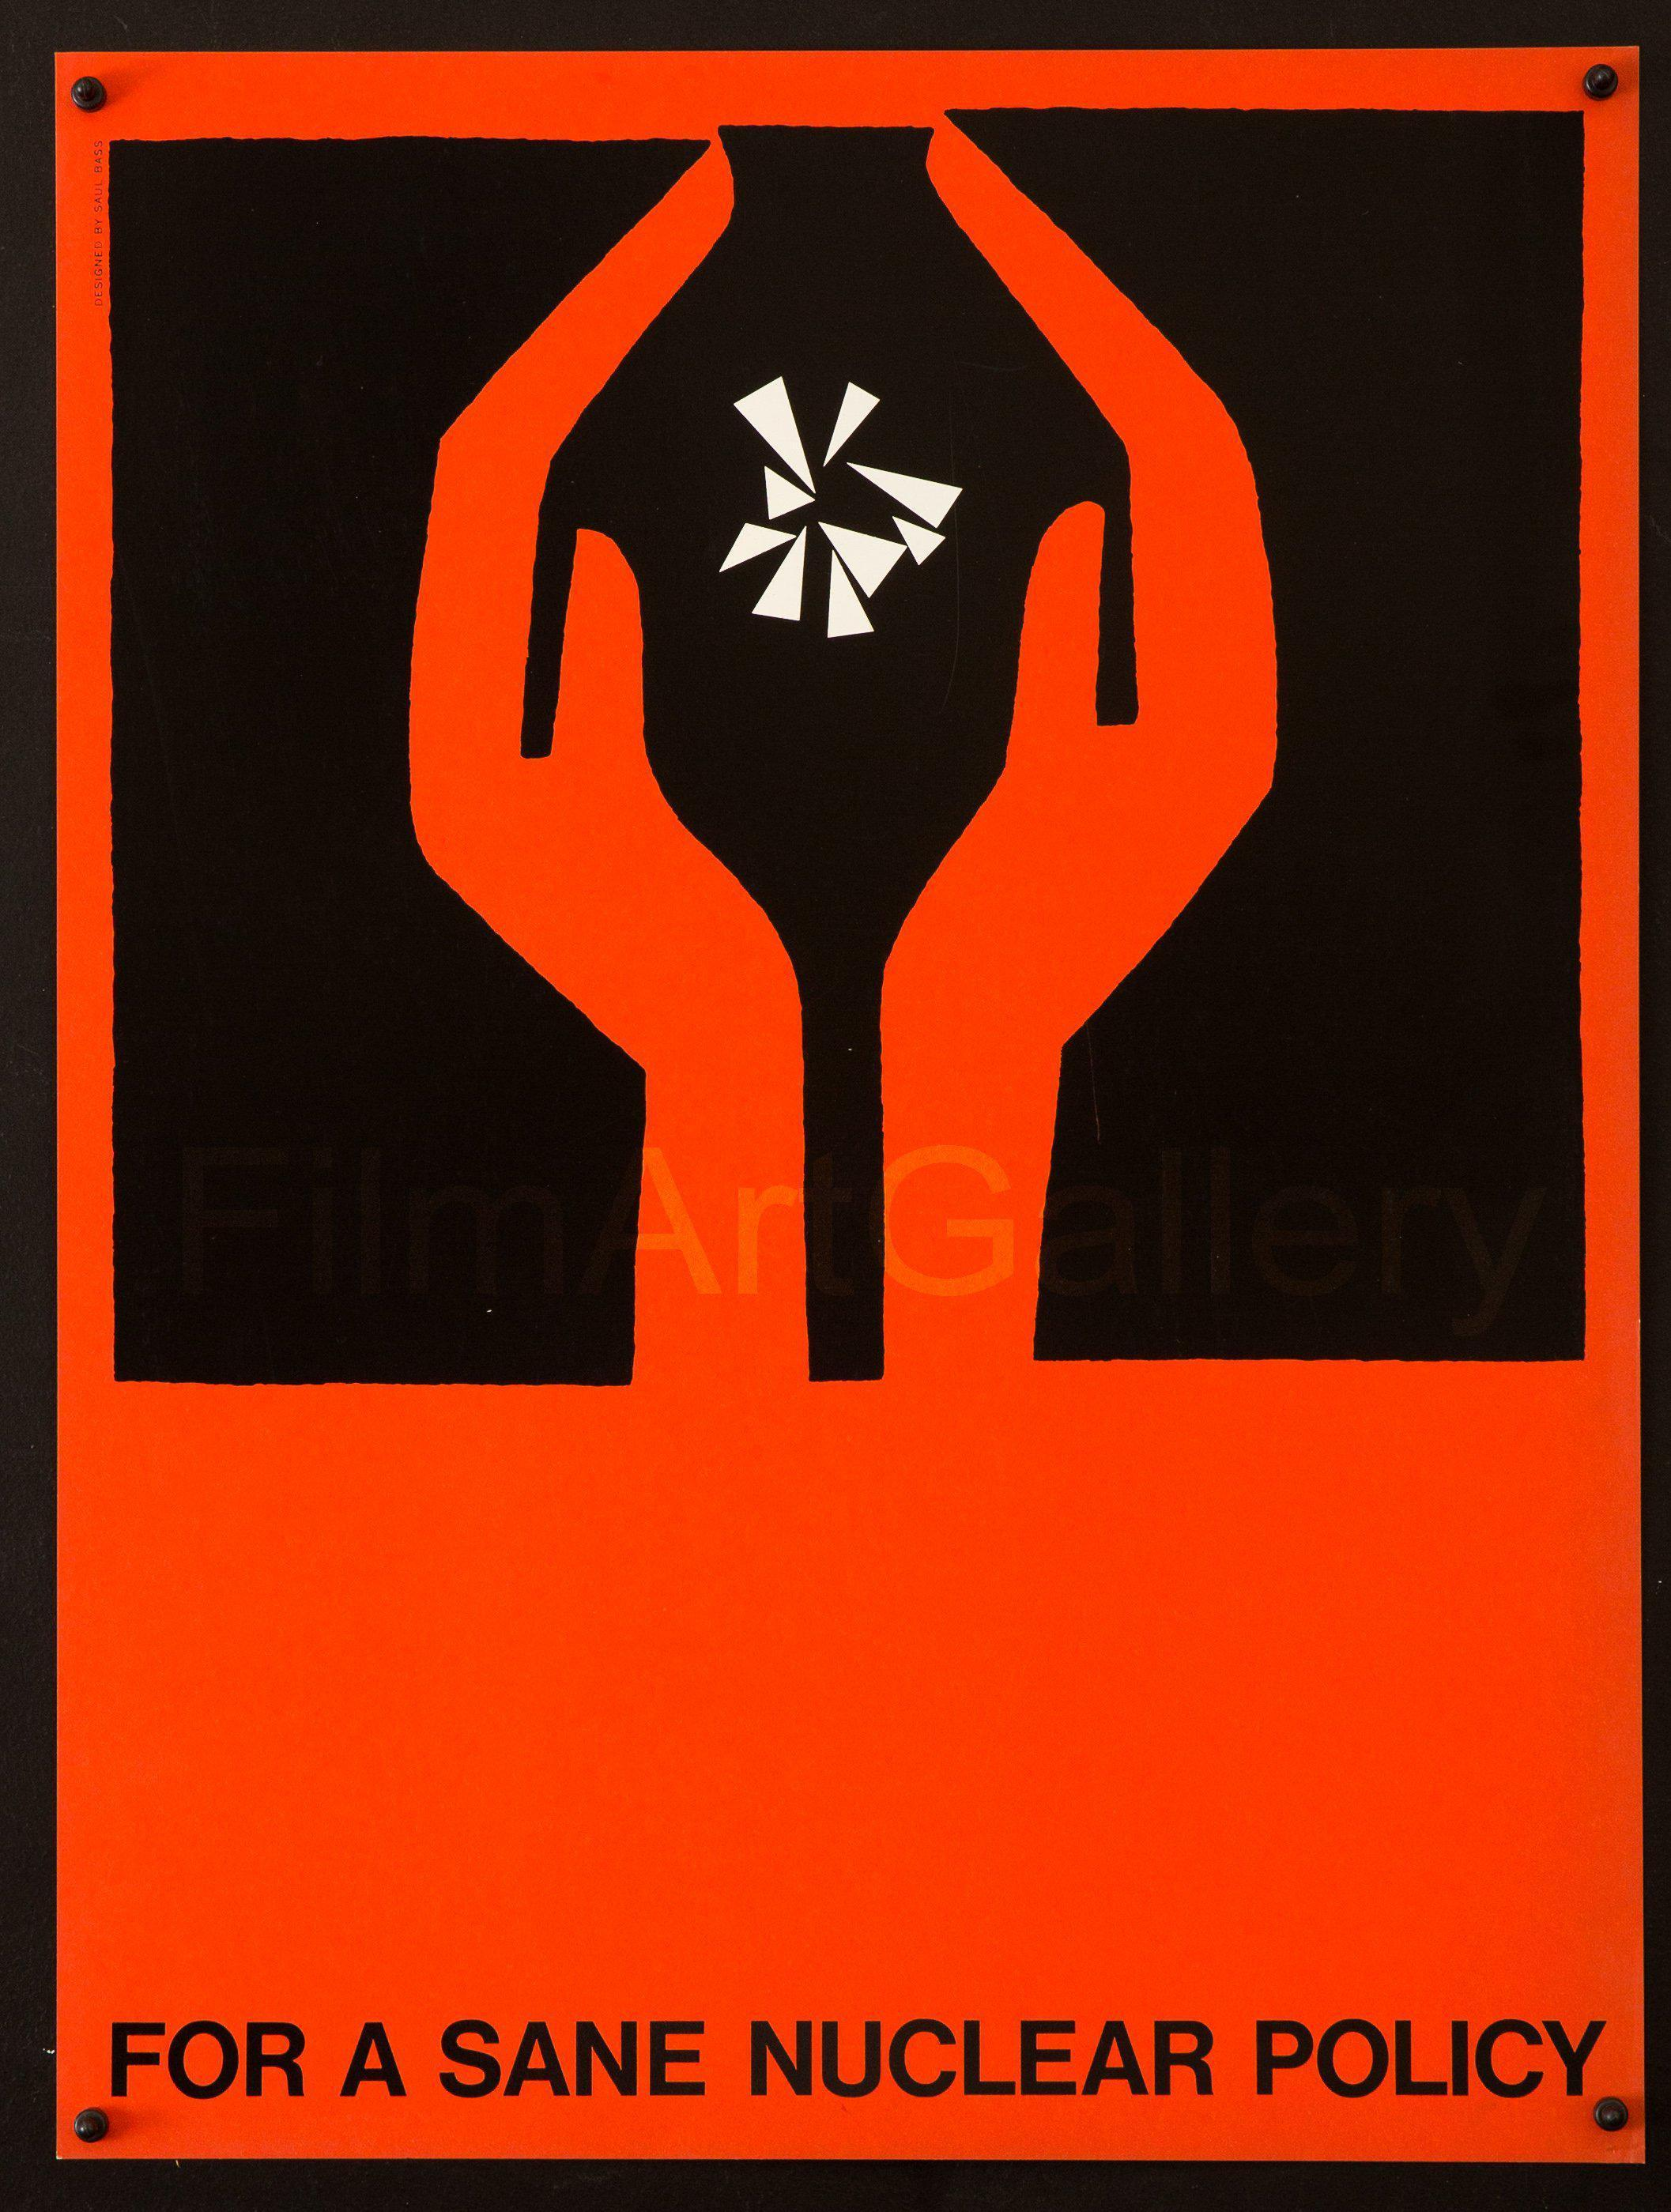 sane-nuclear-policy-vintage-movie-poster-original-18x24-6849